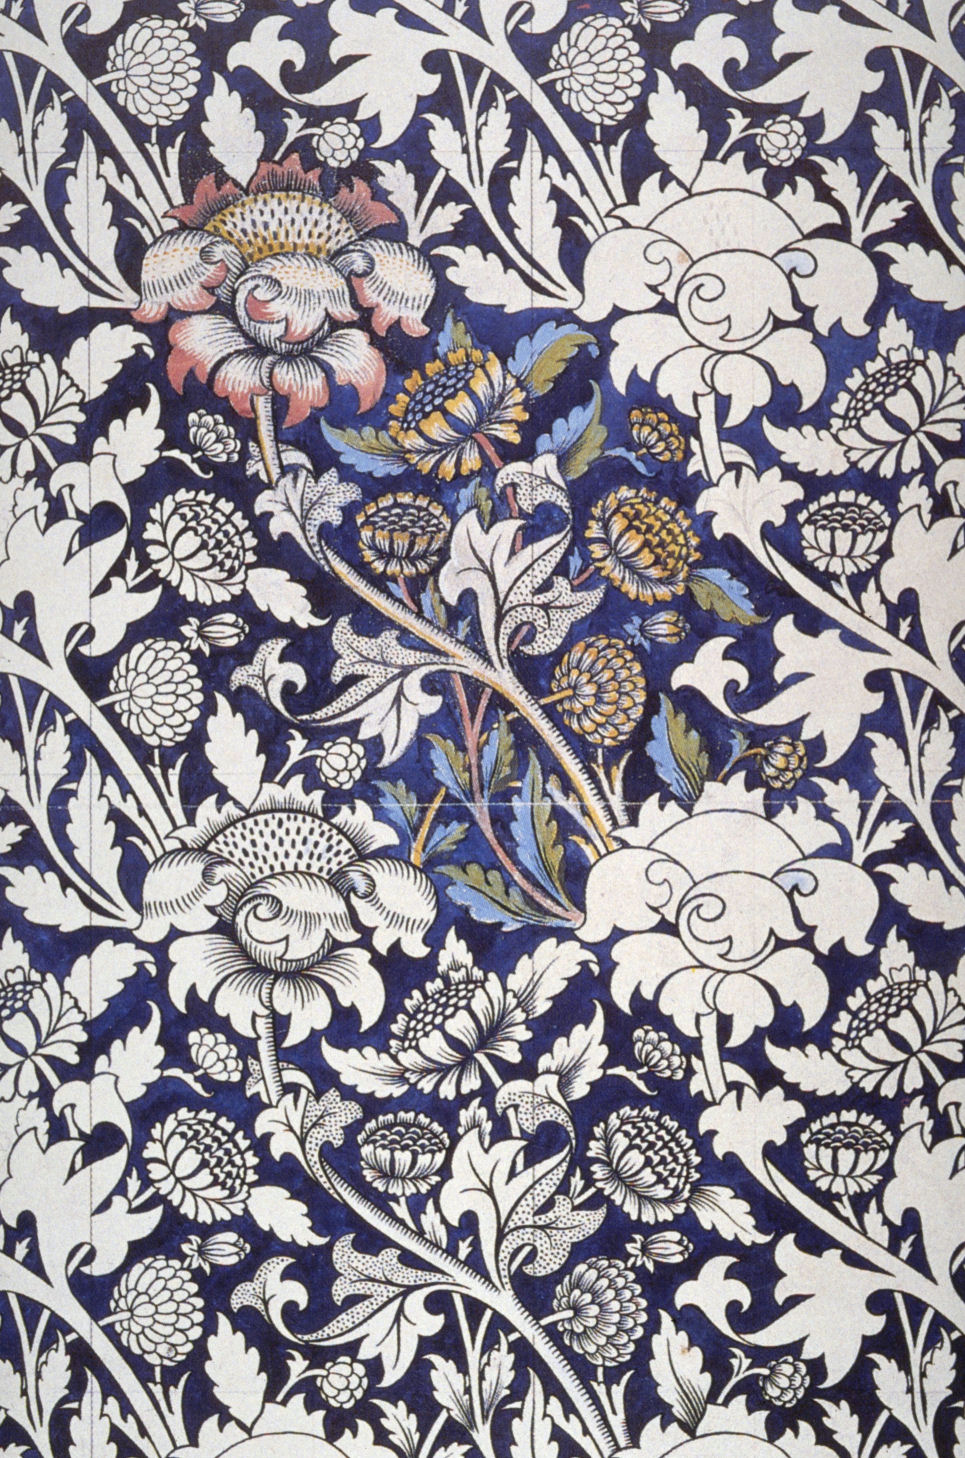 Art artists william morris wallpaper textiles for Fabric printing